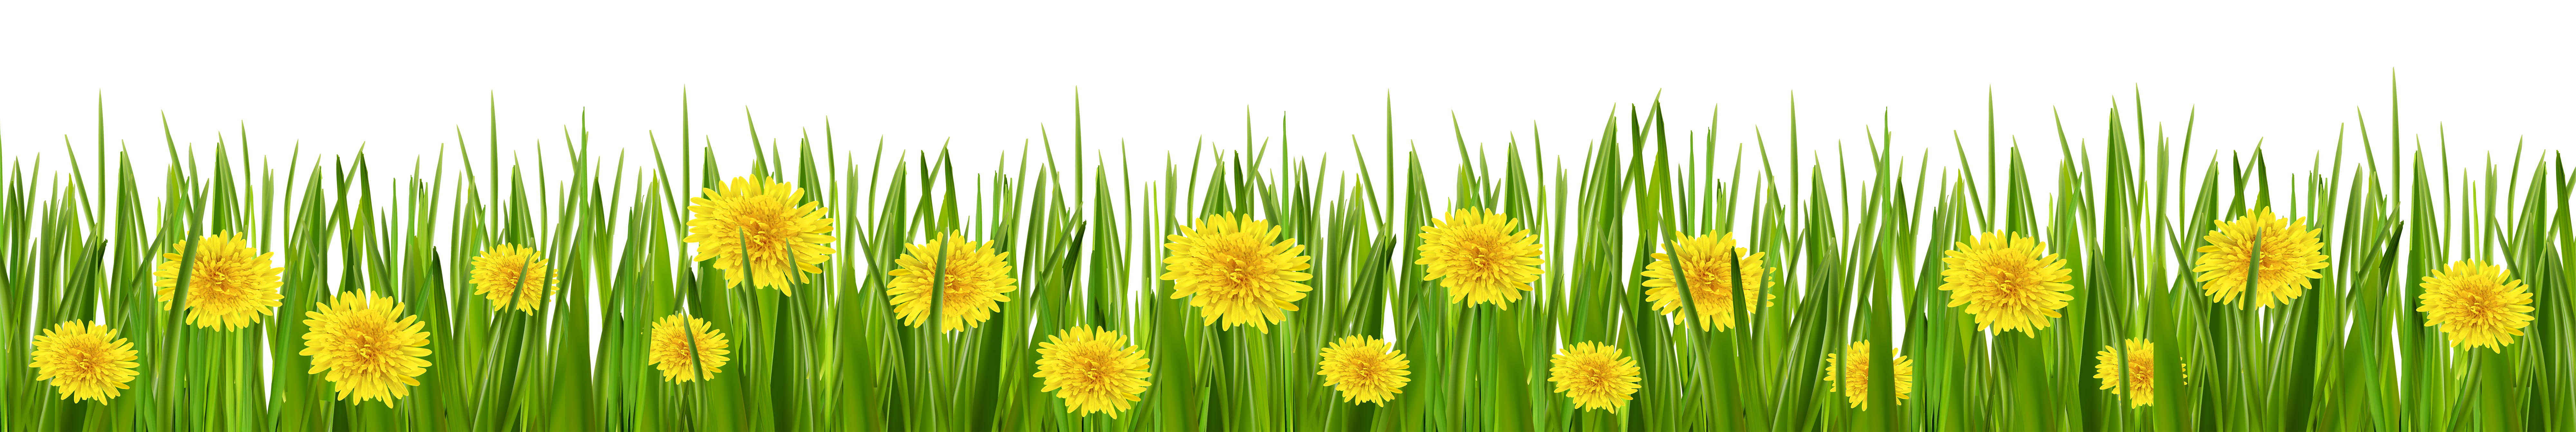 Grass and Dandelions PNG Clip Art.